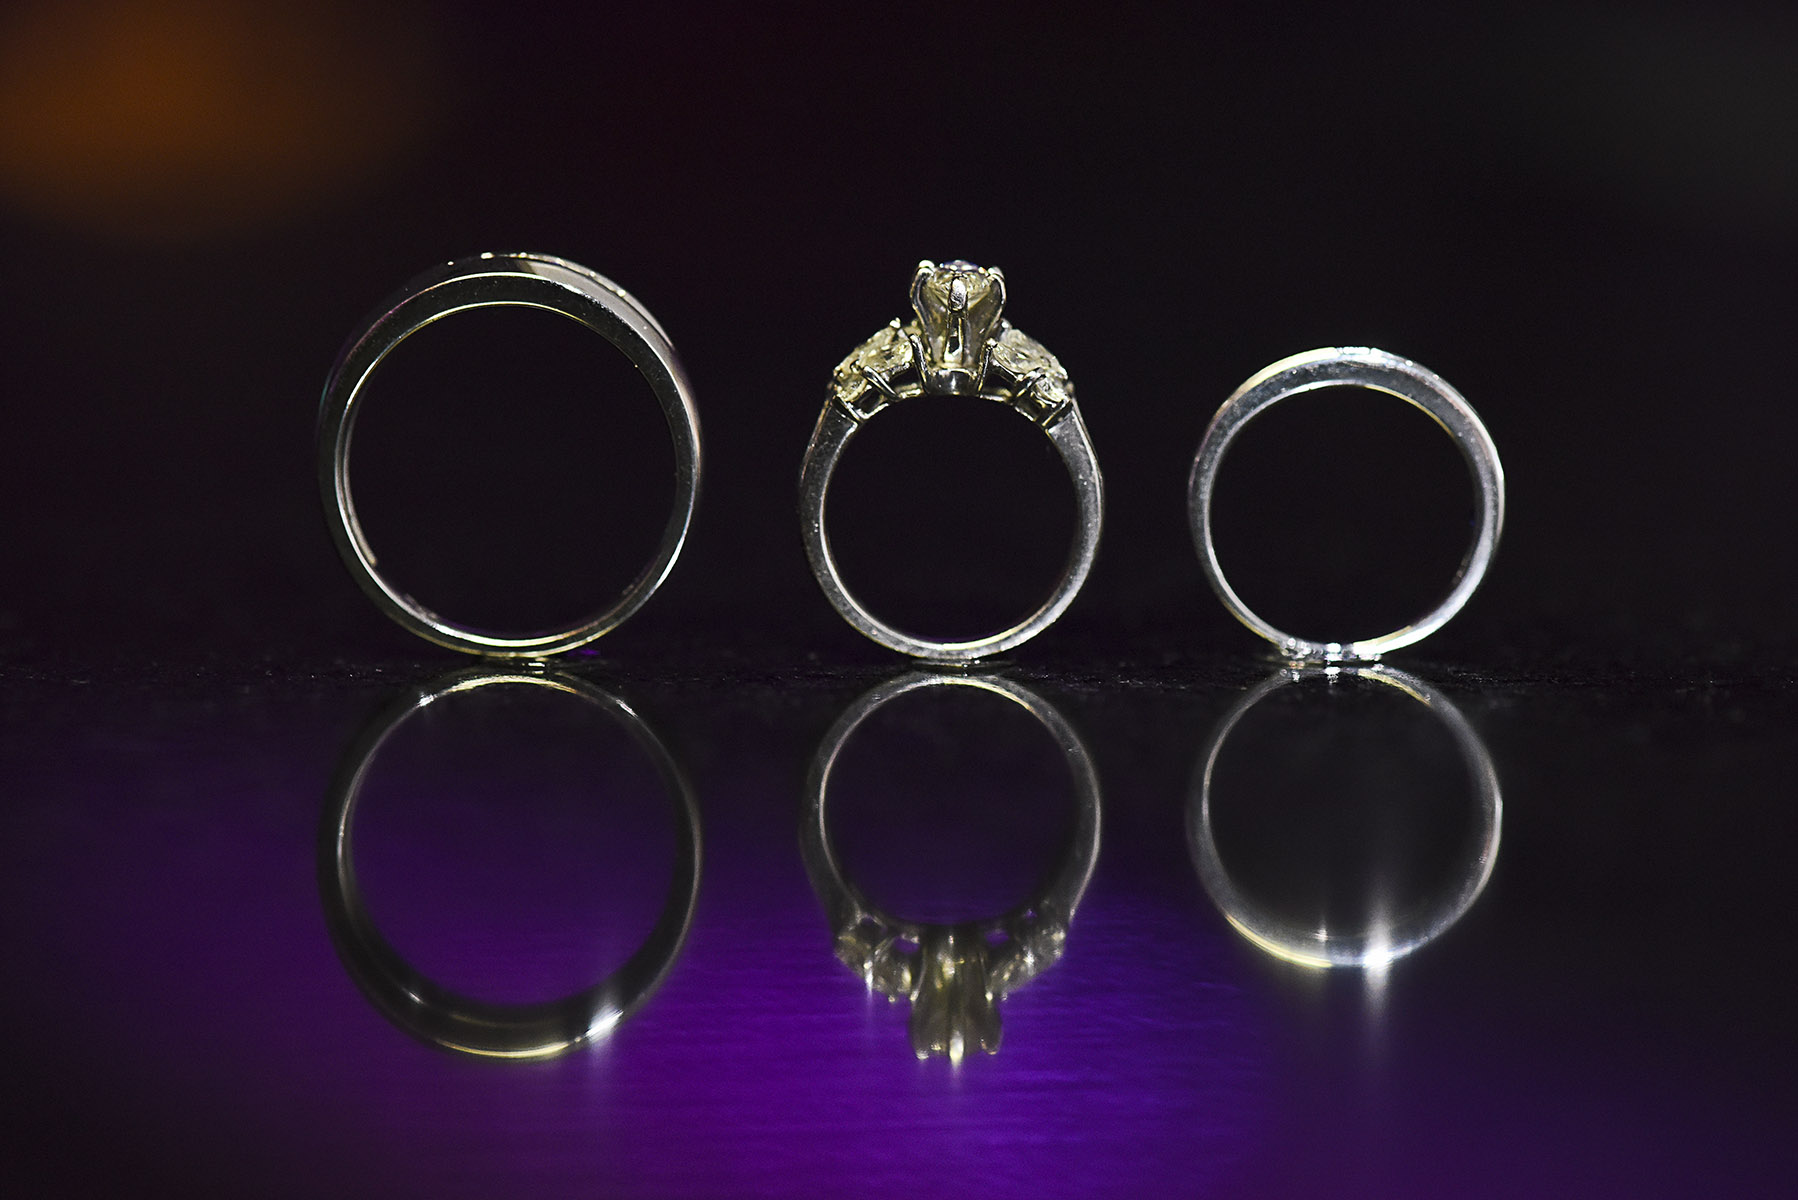 Wedding ring photography done during dance & reception using macro lens,led light, and glue dots. Any reflective surface works great for these detail shots. Add some interesting lighs and bam!